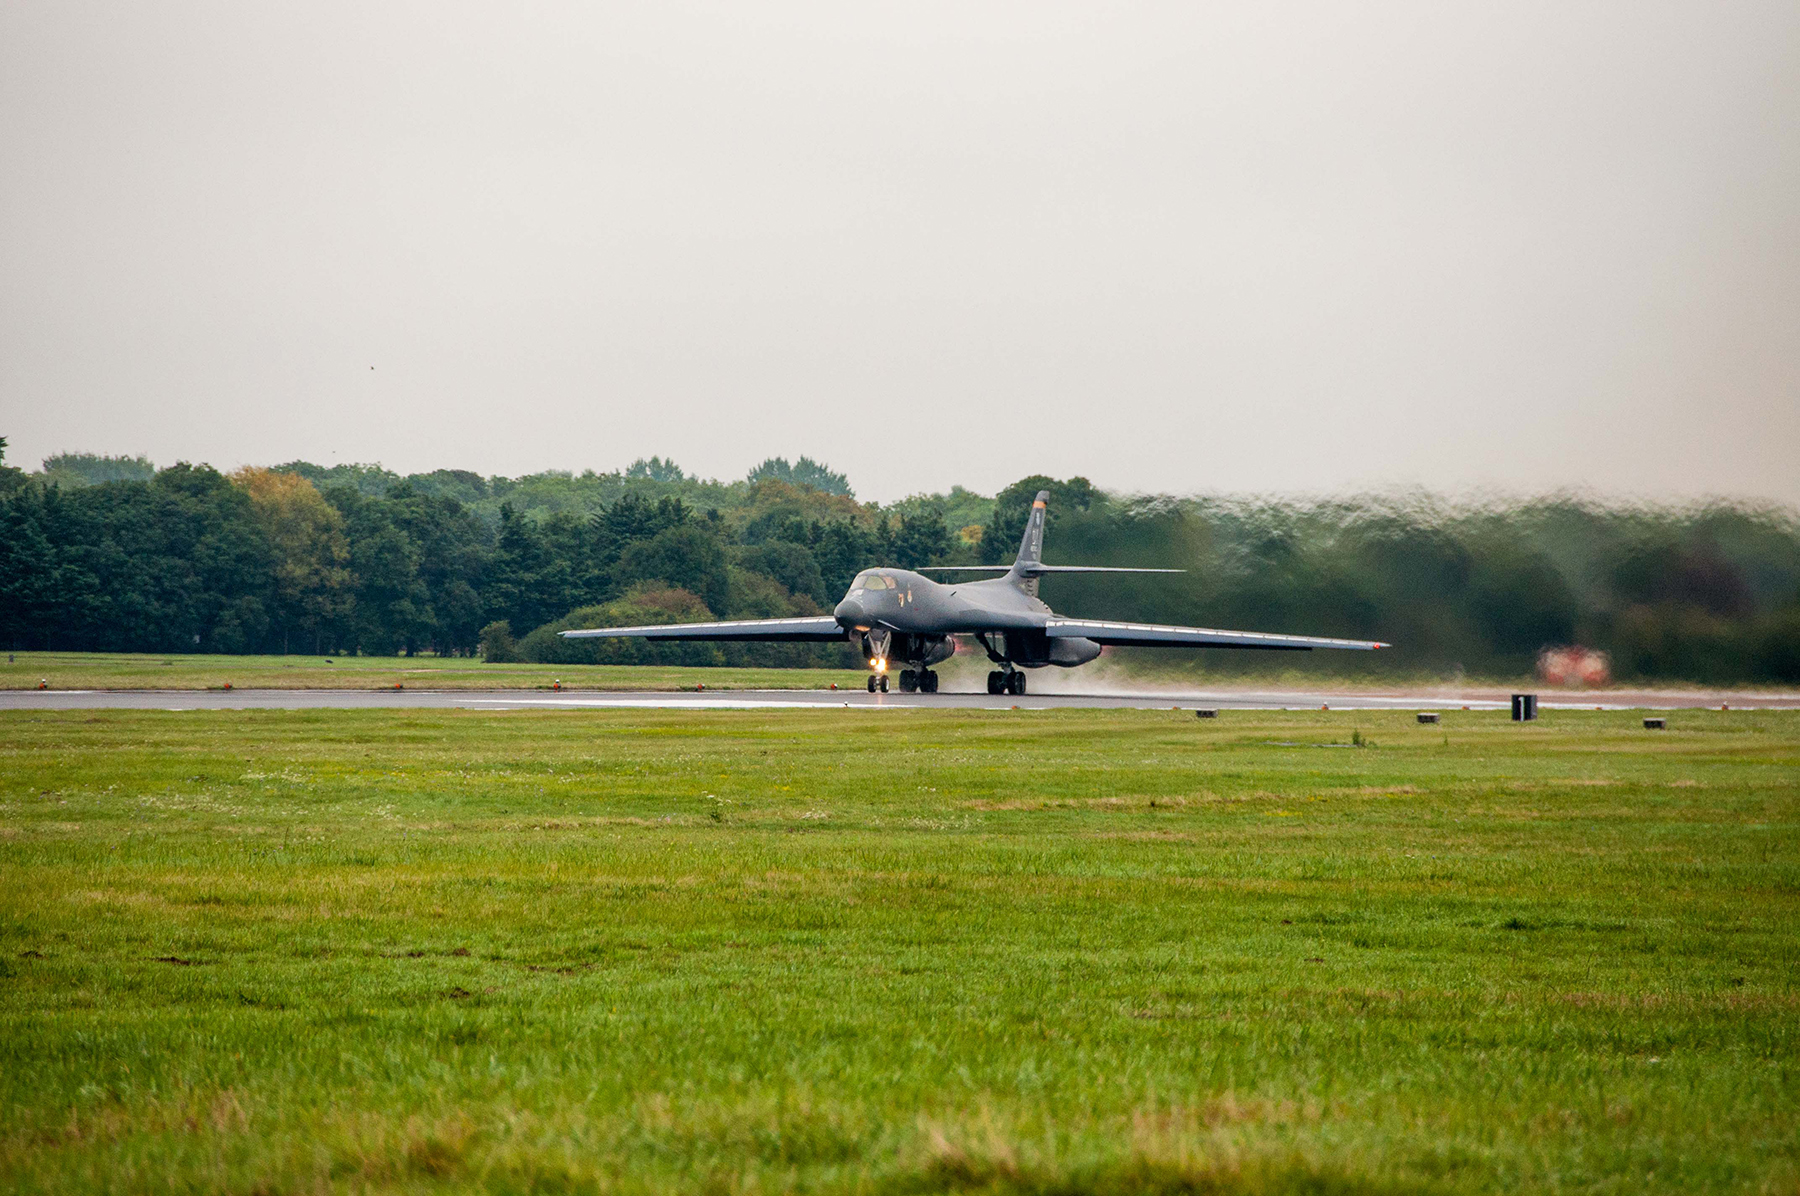 A B-1B Lancer from the 7th Bomb Wing, Dyess Air Base, Texas, Air Force Global Strike Command, taxis down the runway on Sep. 5, 2016 as the first day of participation in Exercise Ample Strike 2016, an annual Czech Republic-led exercise with 300 participants from 18 countries scheduled for Sept. 5-16. (U.S. Air Force photo by 1st Lt. Monique Roux/Released)